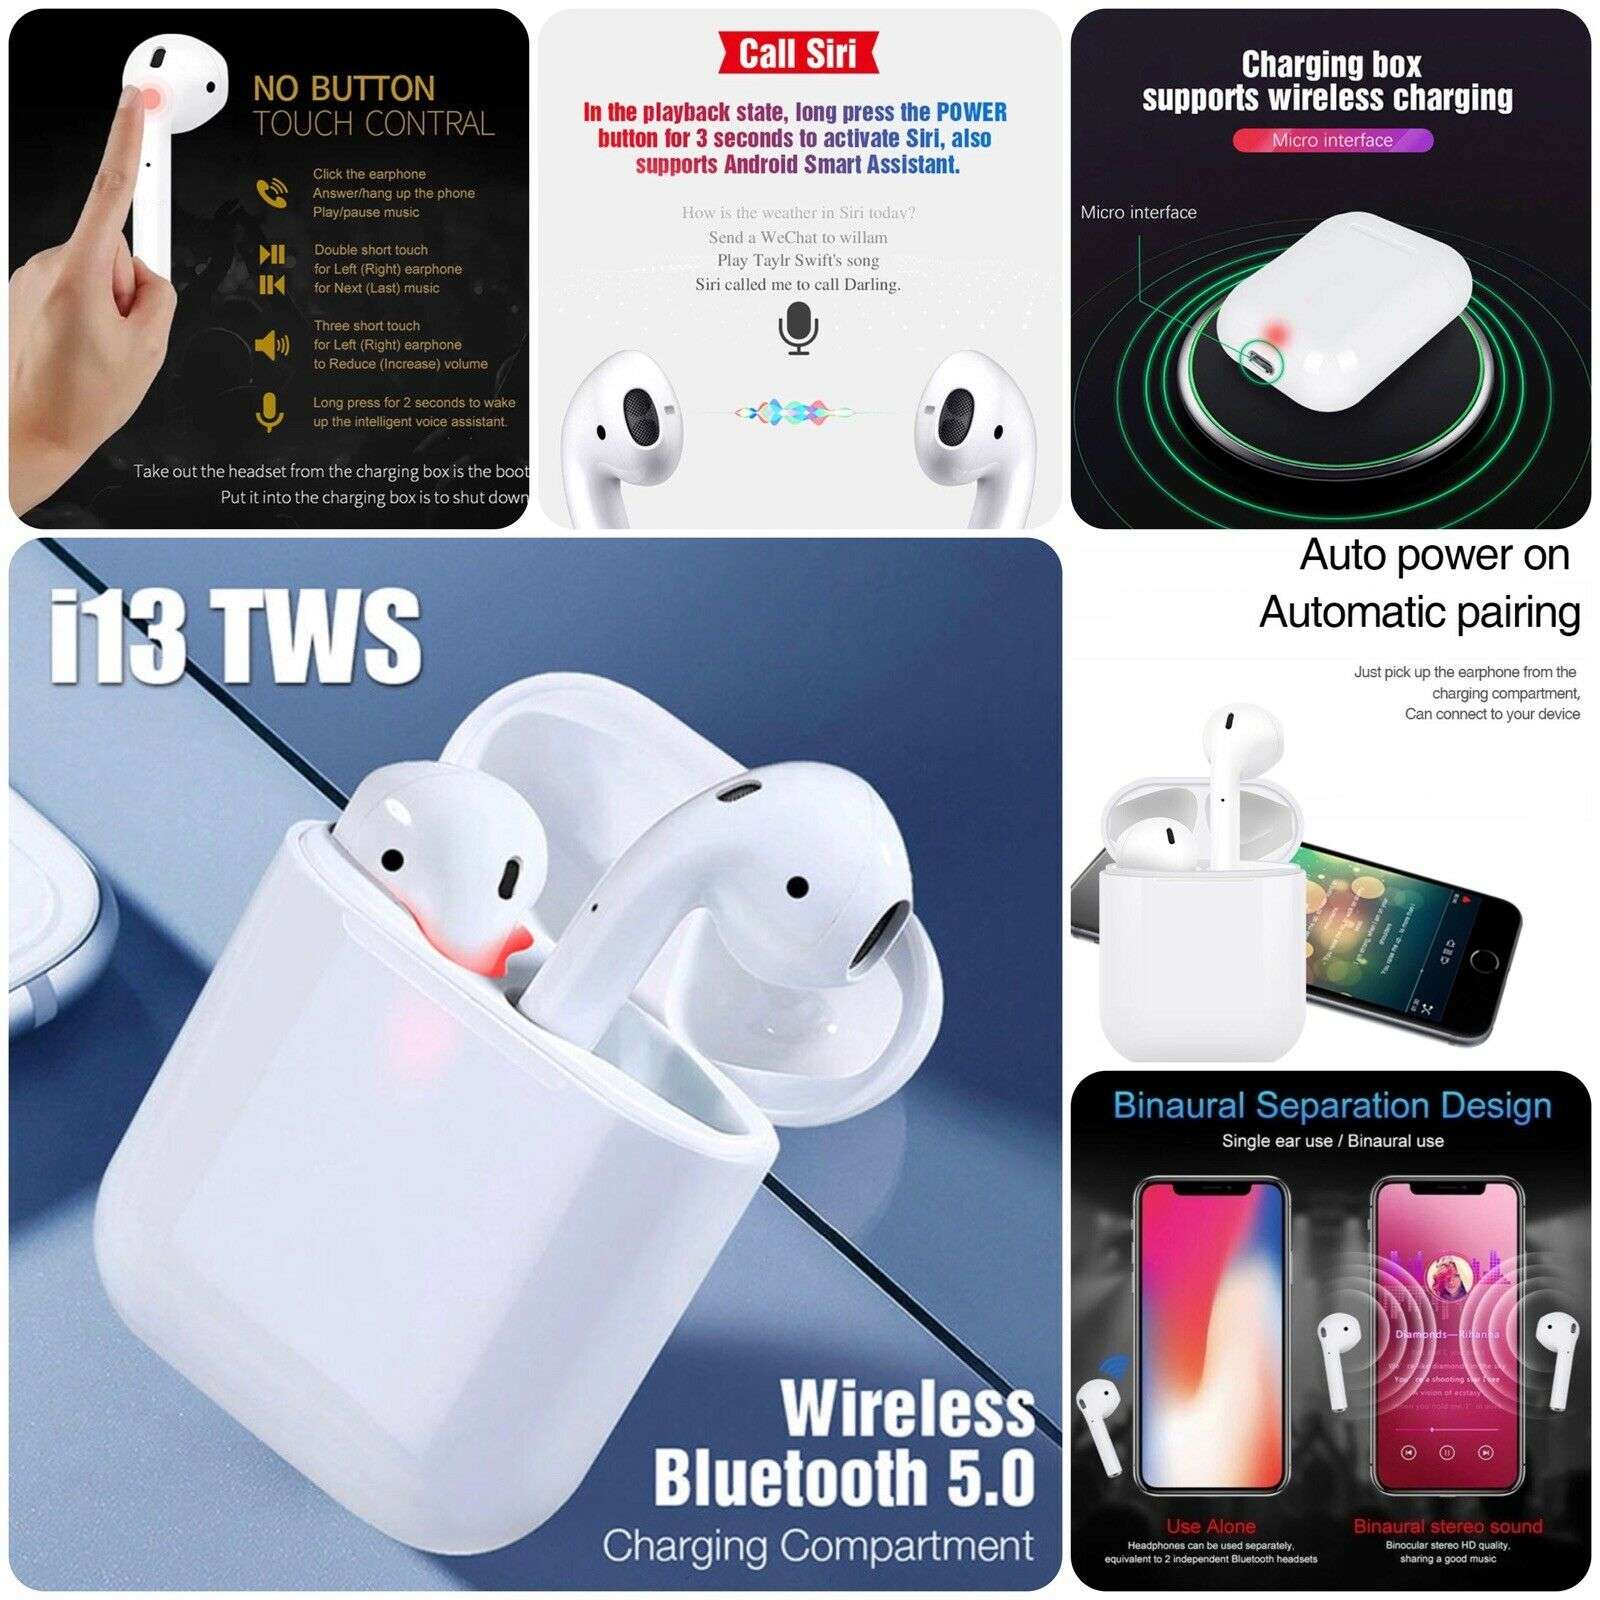 680fa9a0e29 Details about i13 TWS Wireless Bluetooth 5.0 Earbud Mini Earphone Headphone  Touch Control New